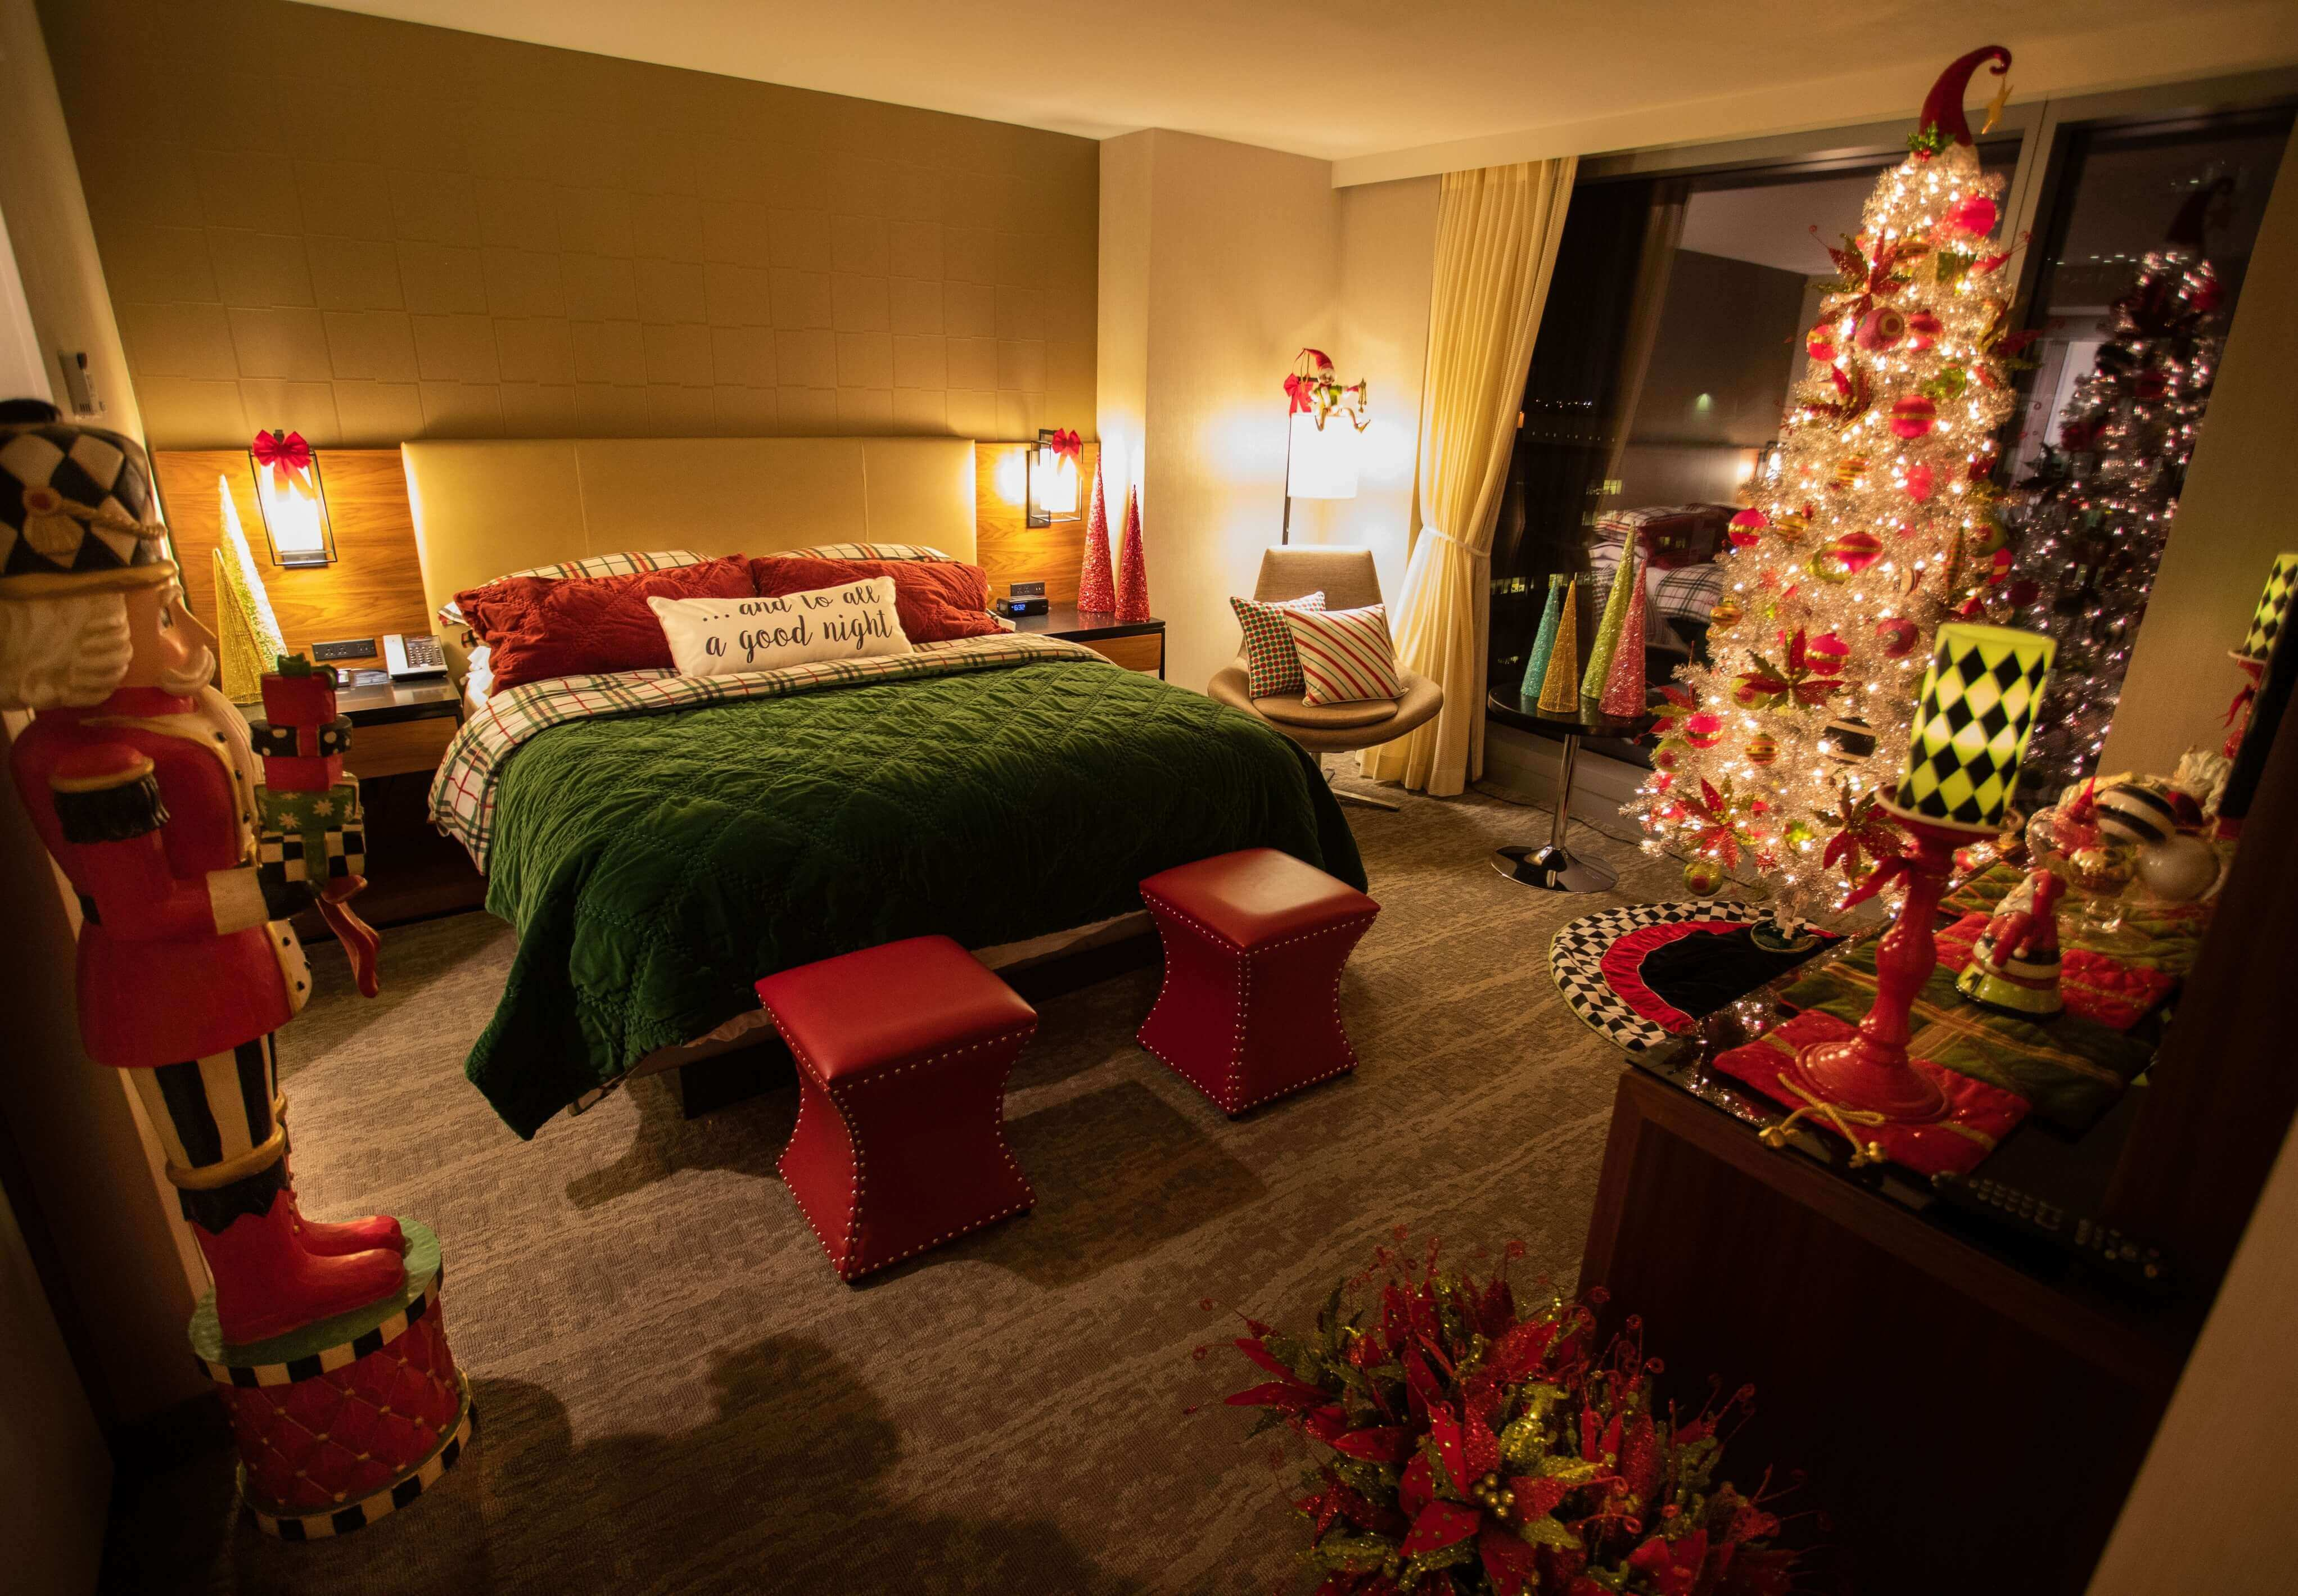 Enjoy a festive sleep, when you spend the night in the Mr. Kringle Suite at the Hilton Cleveland Downtown.